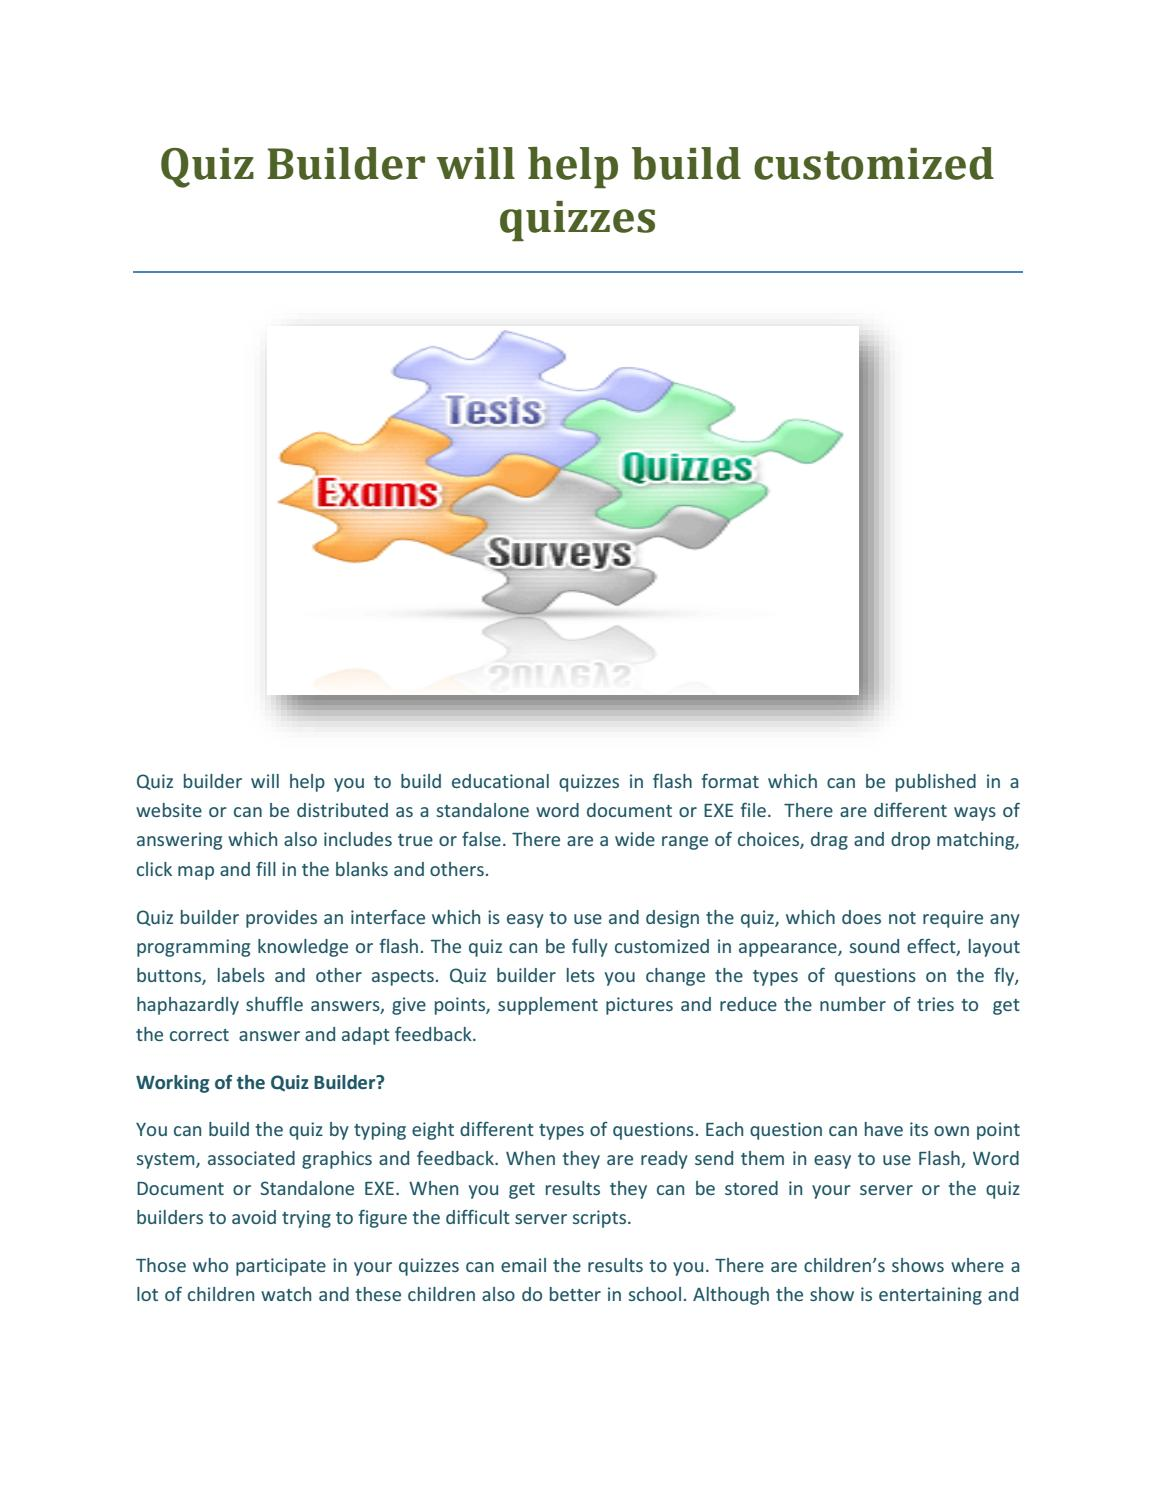 Quiz builder will help build customized quizzes by QuestBase